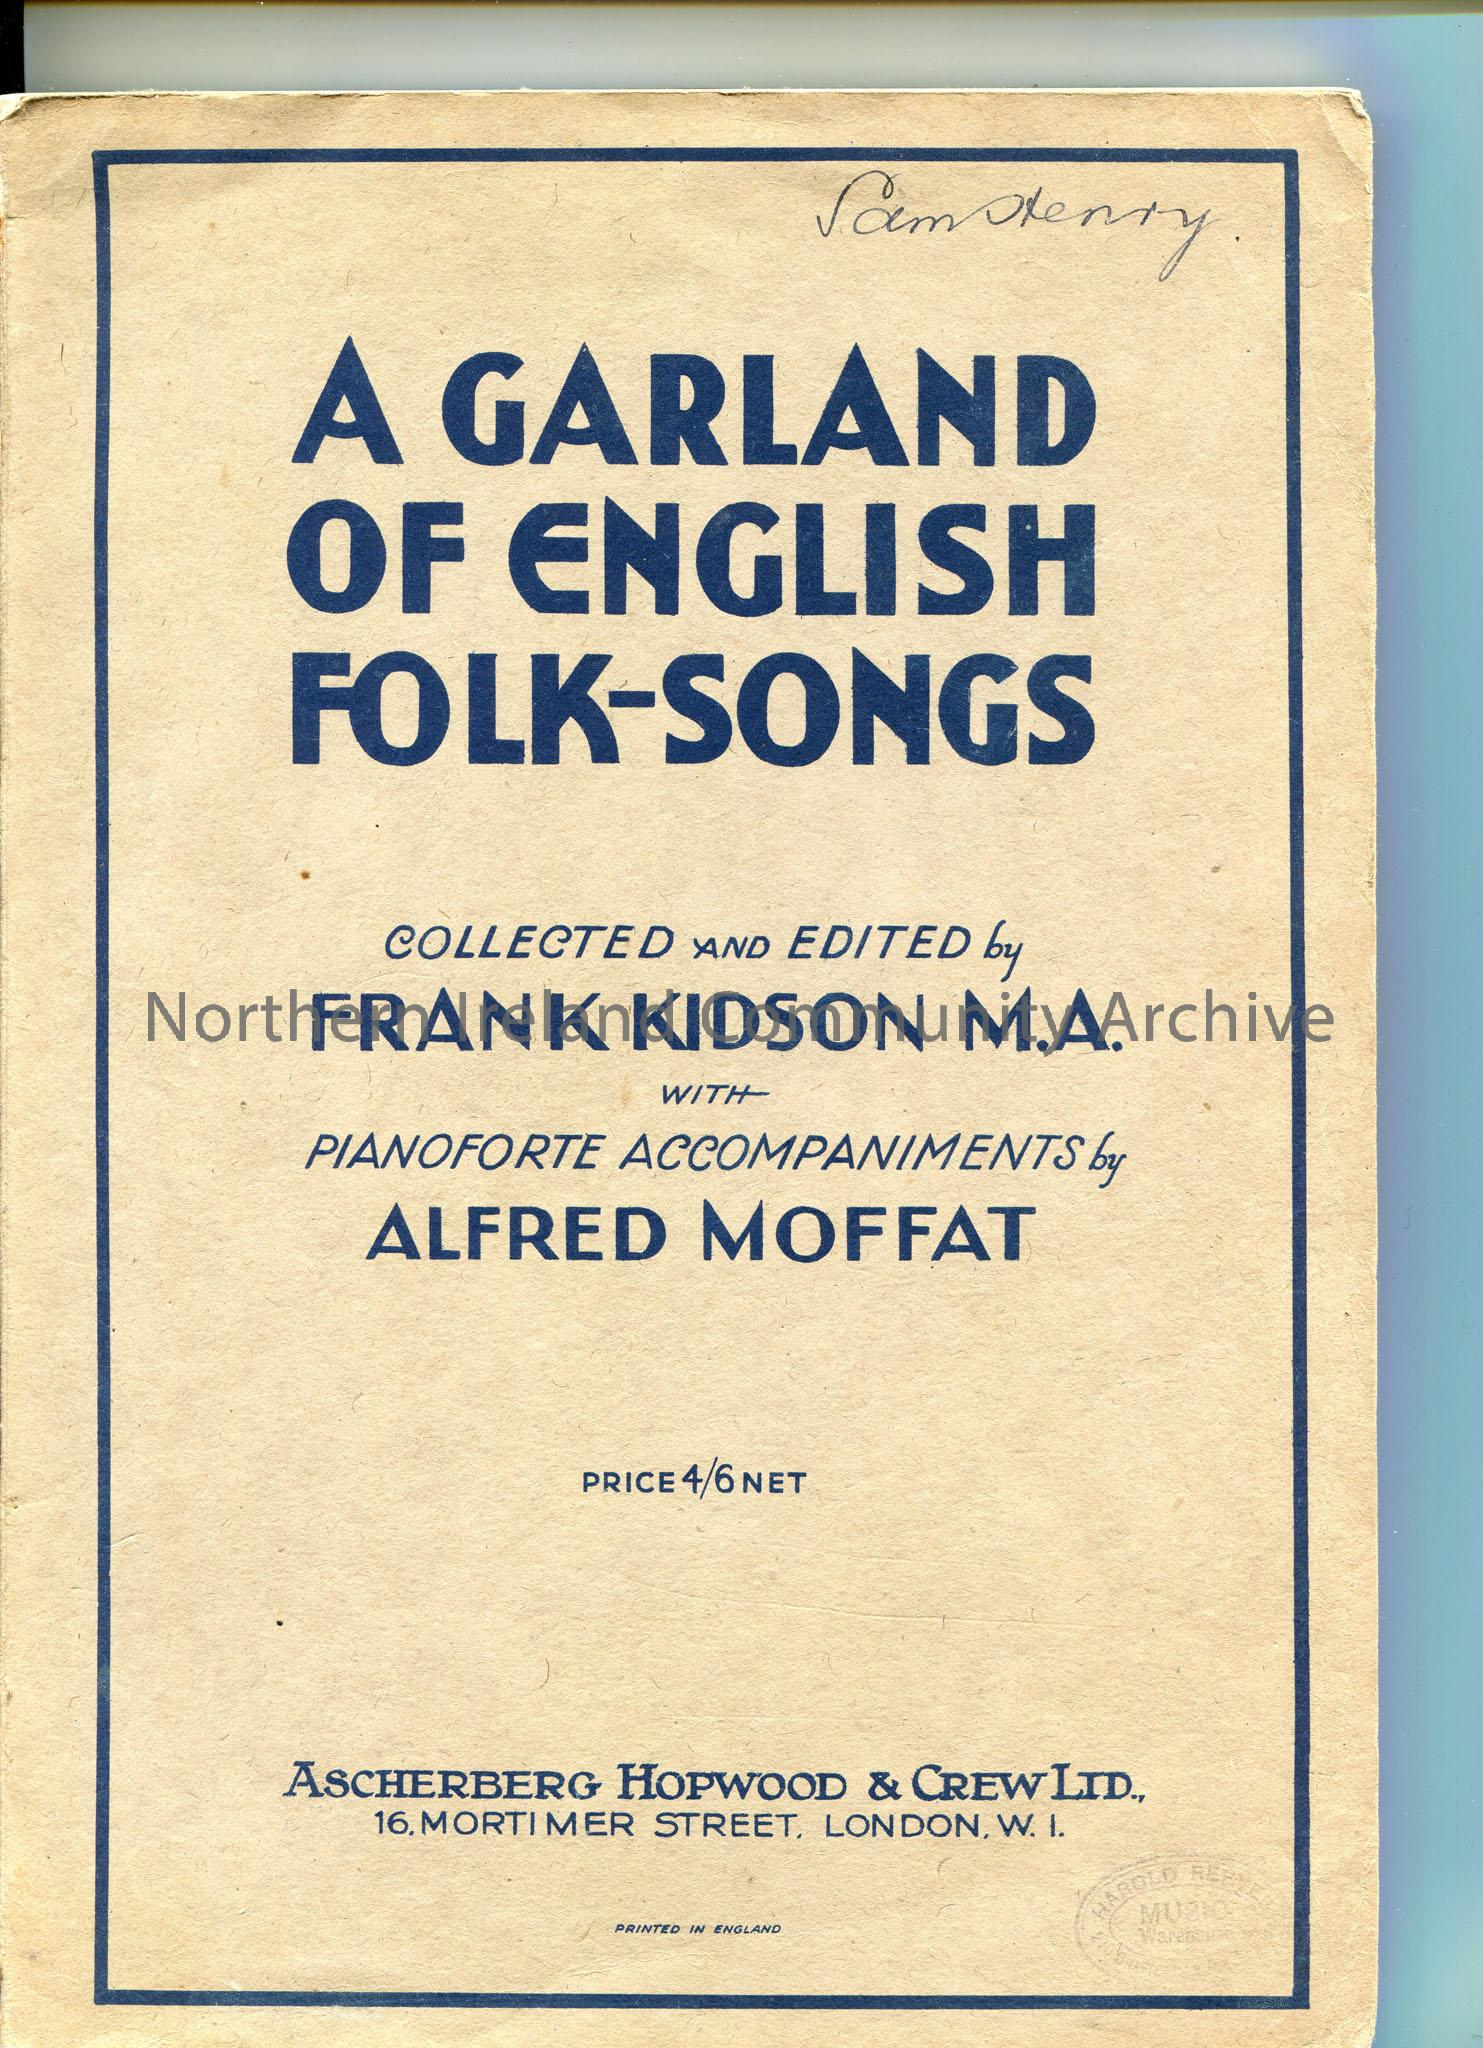 'A Garland of English Folk-songs'. Collected and edited by Frank Kidson with pianoforte accompaniments by Alfred Moffat. Published by Ascherberg Hopwo…